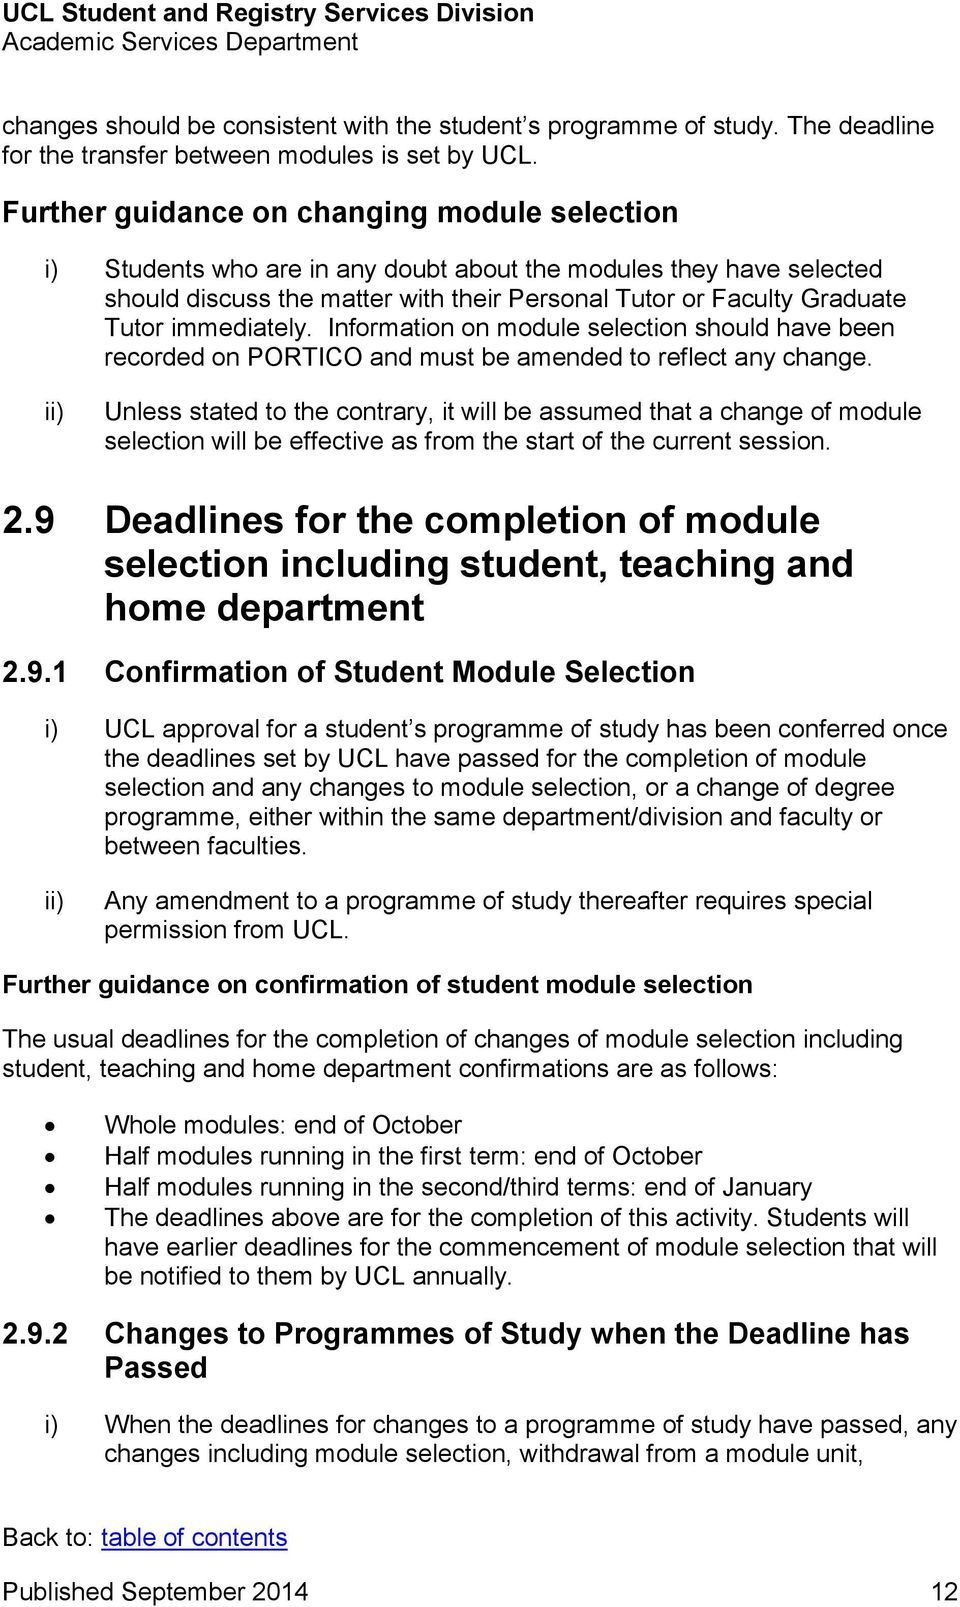 immediately. Information on module selection should have been recorded on PORTICO and must be amended to reflect any change.